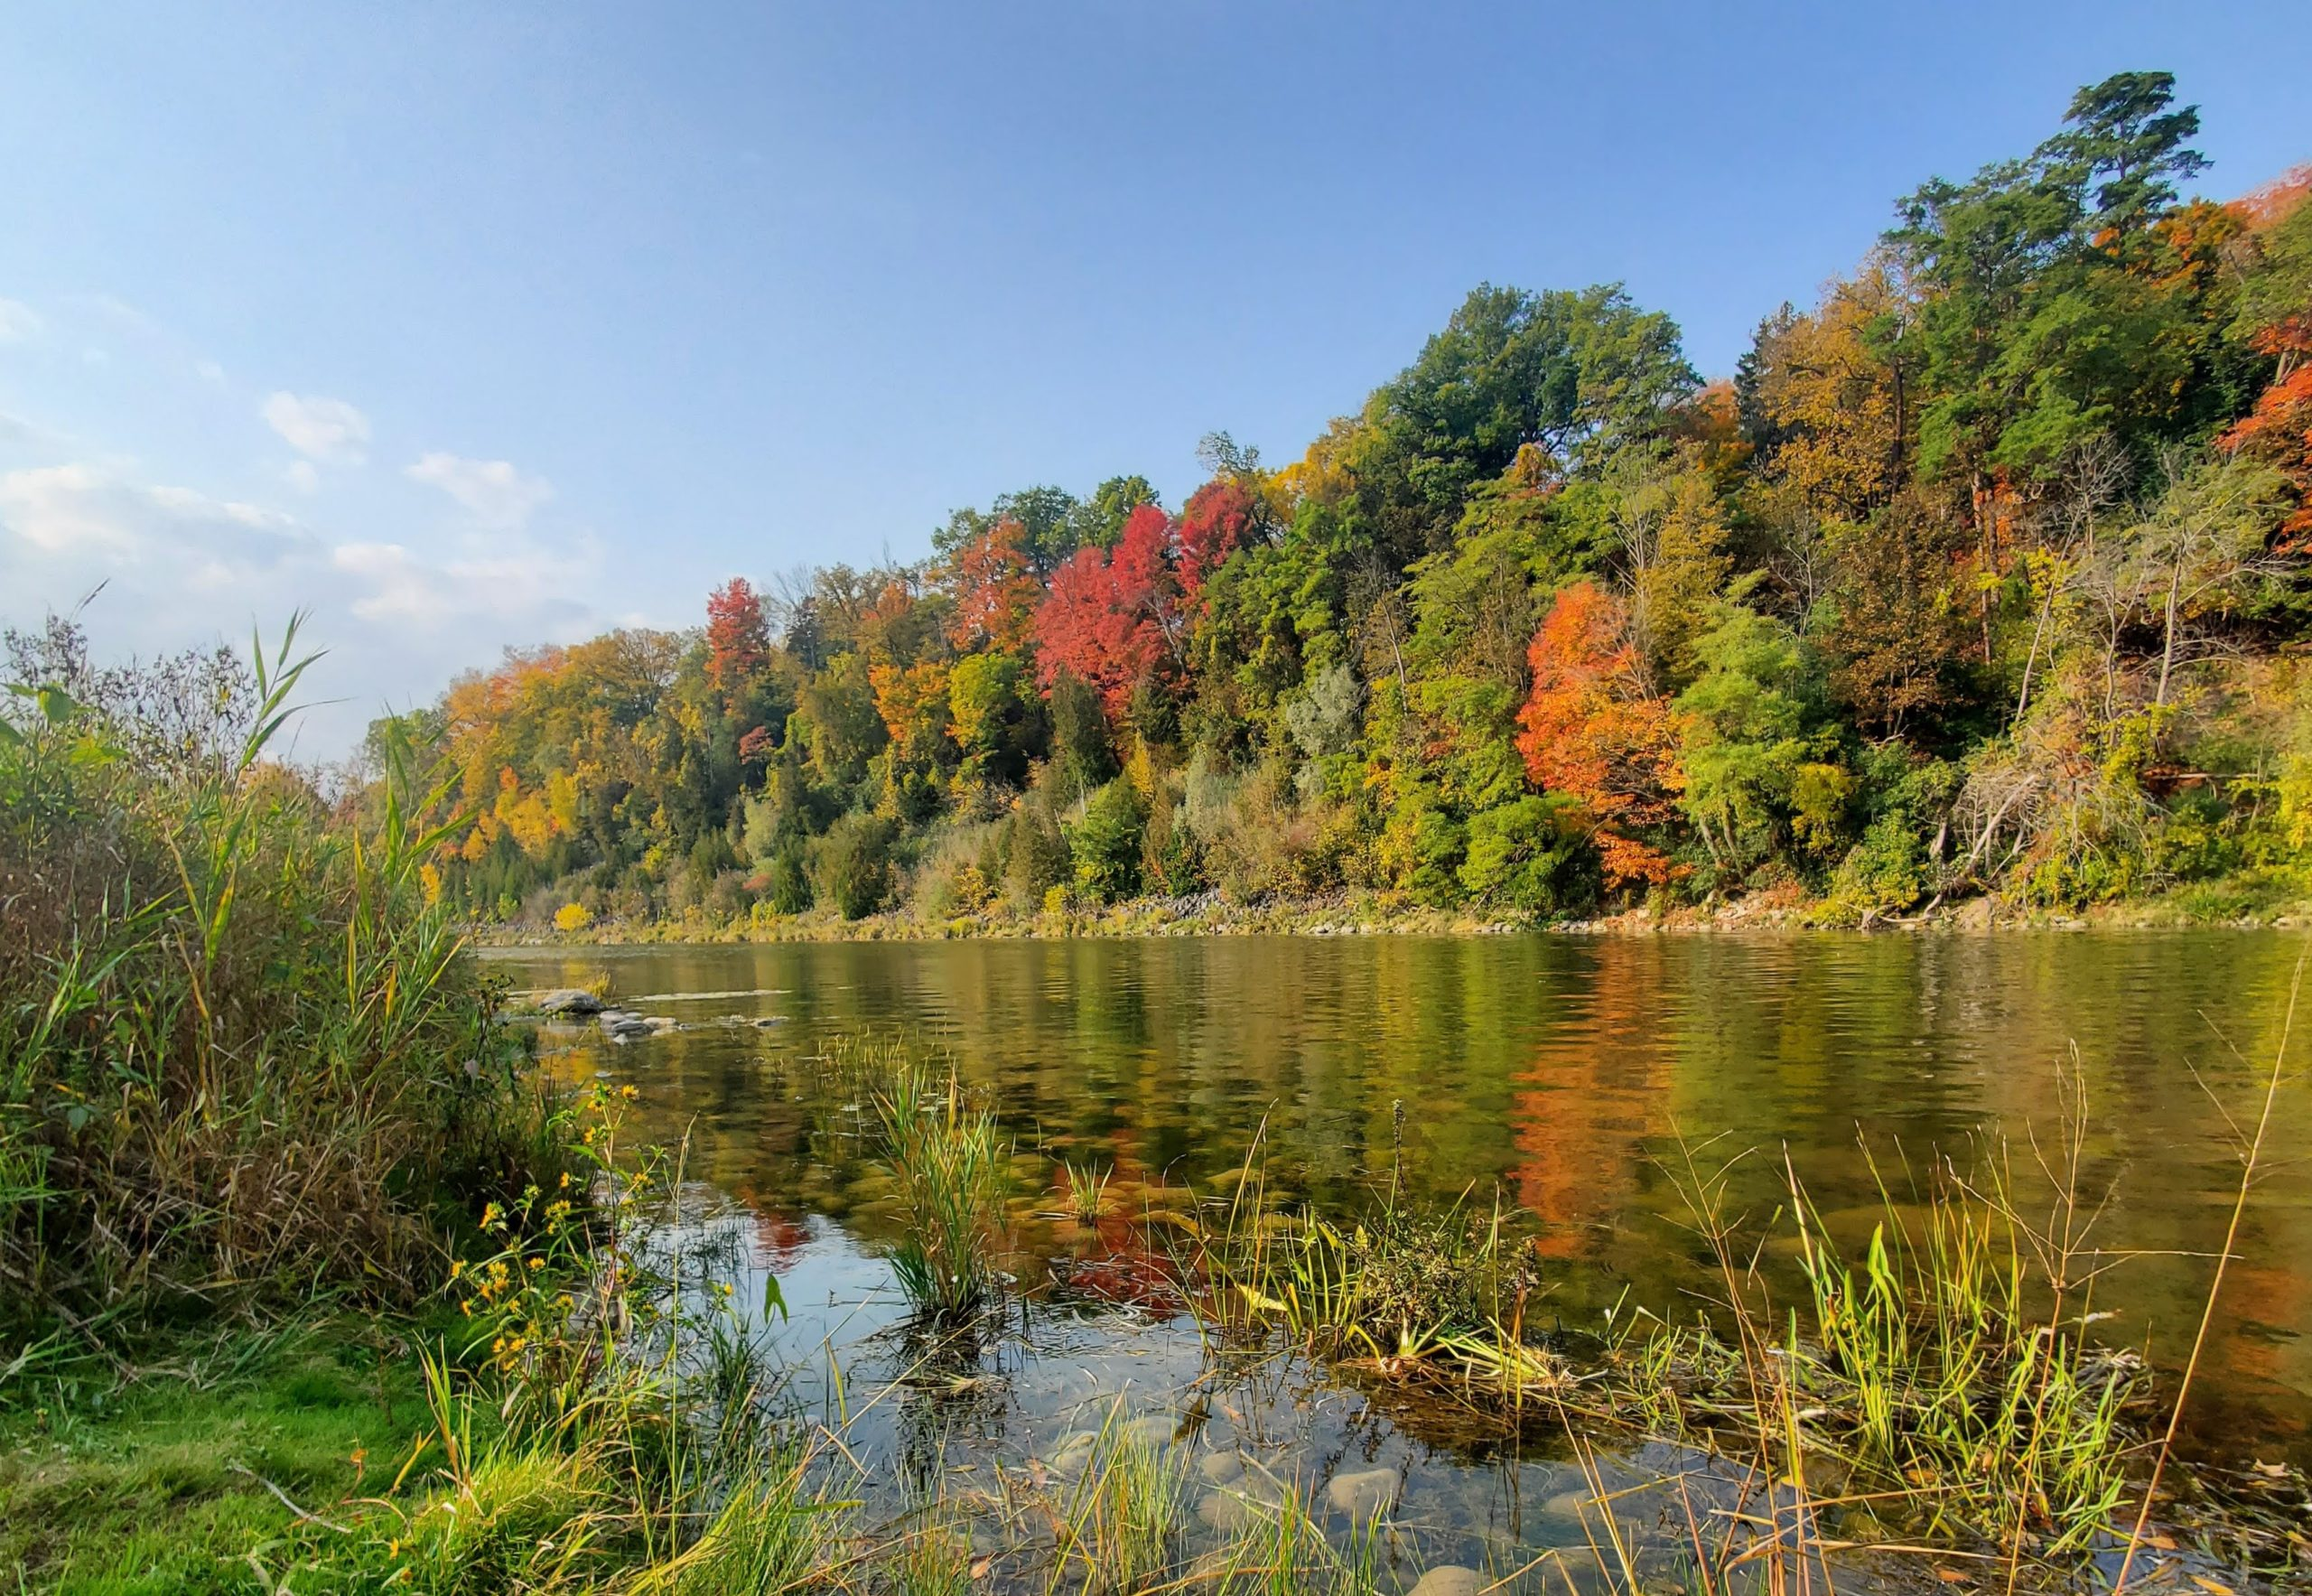 a view of the Grand River and the trees lining its banks; the leaves on the trees are beginning to change colour, and it's a sunny fall day